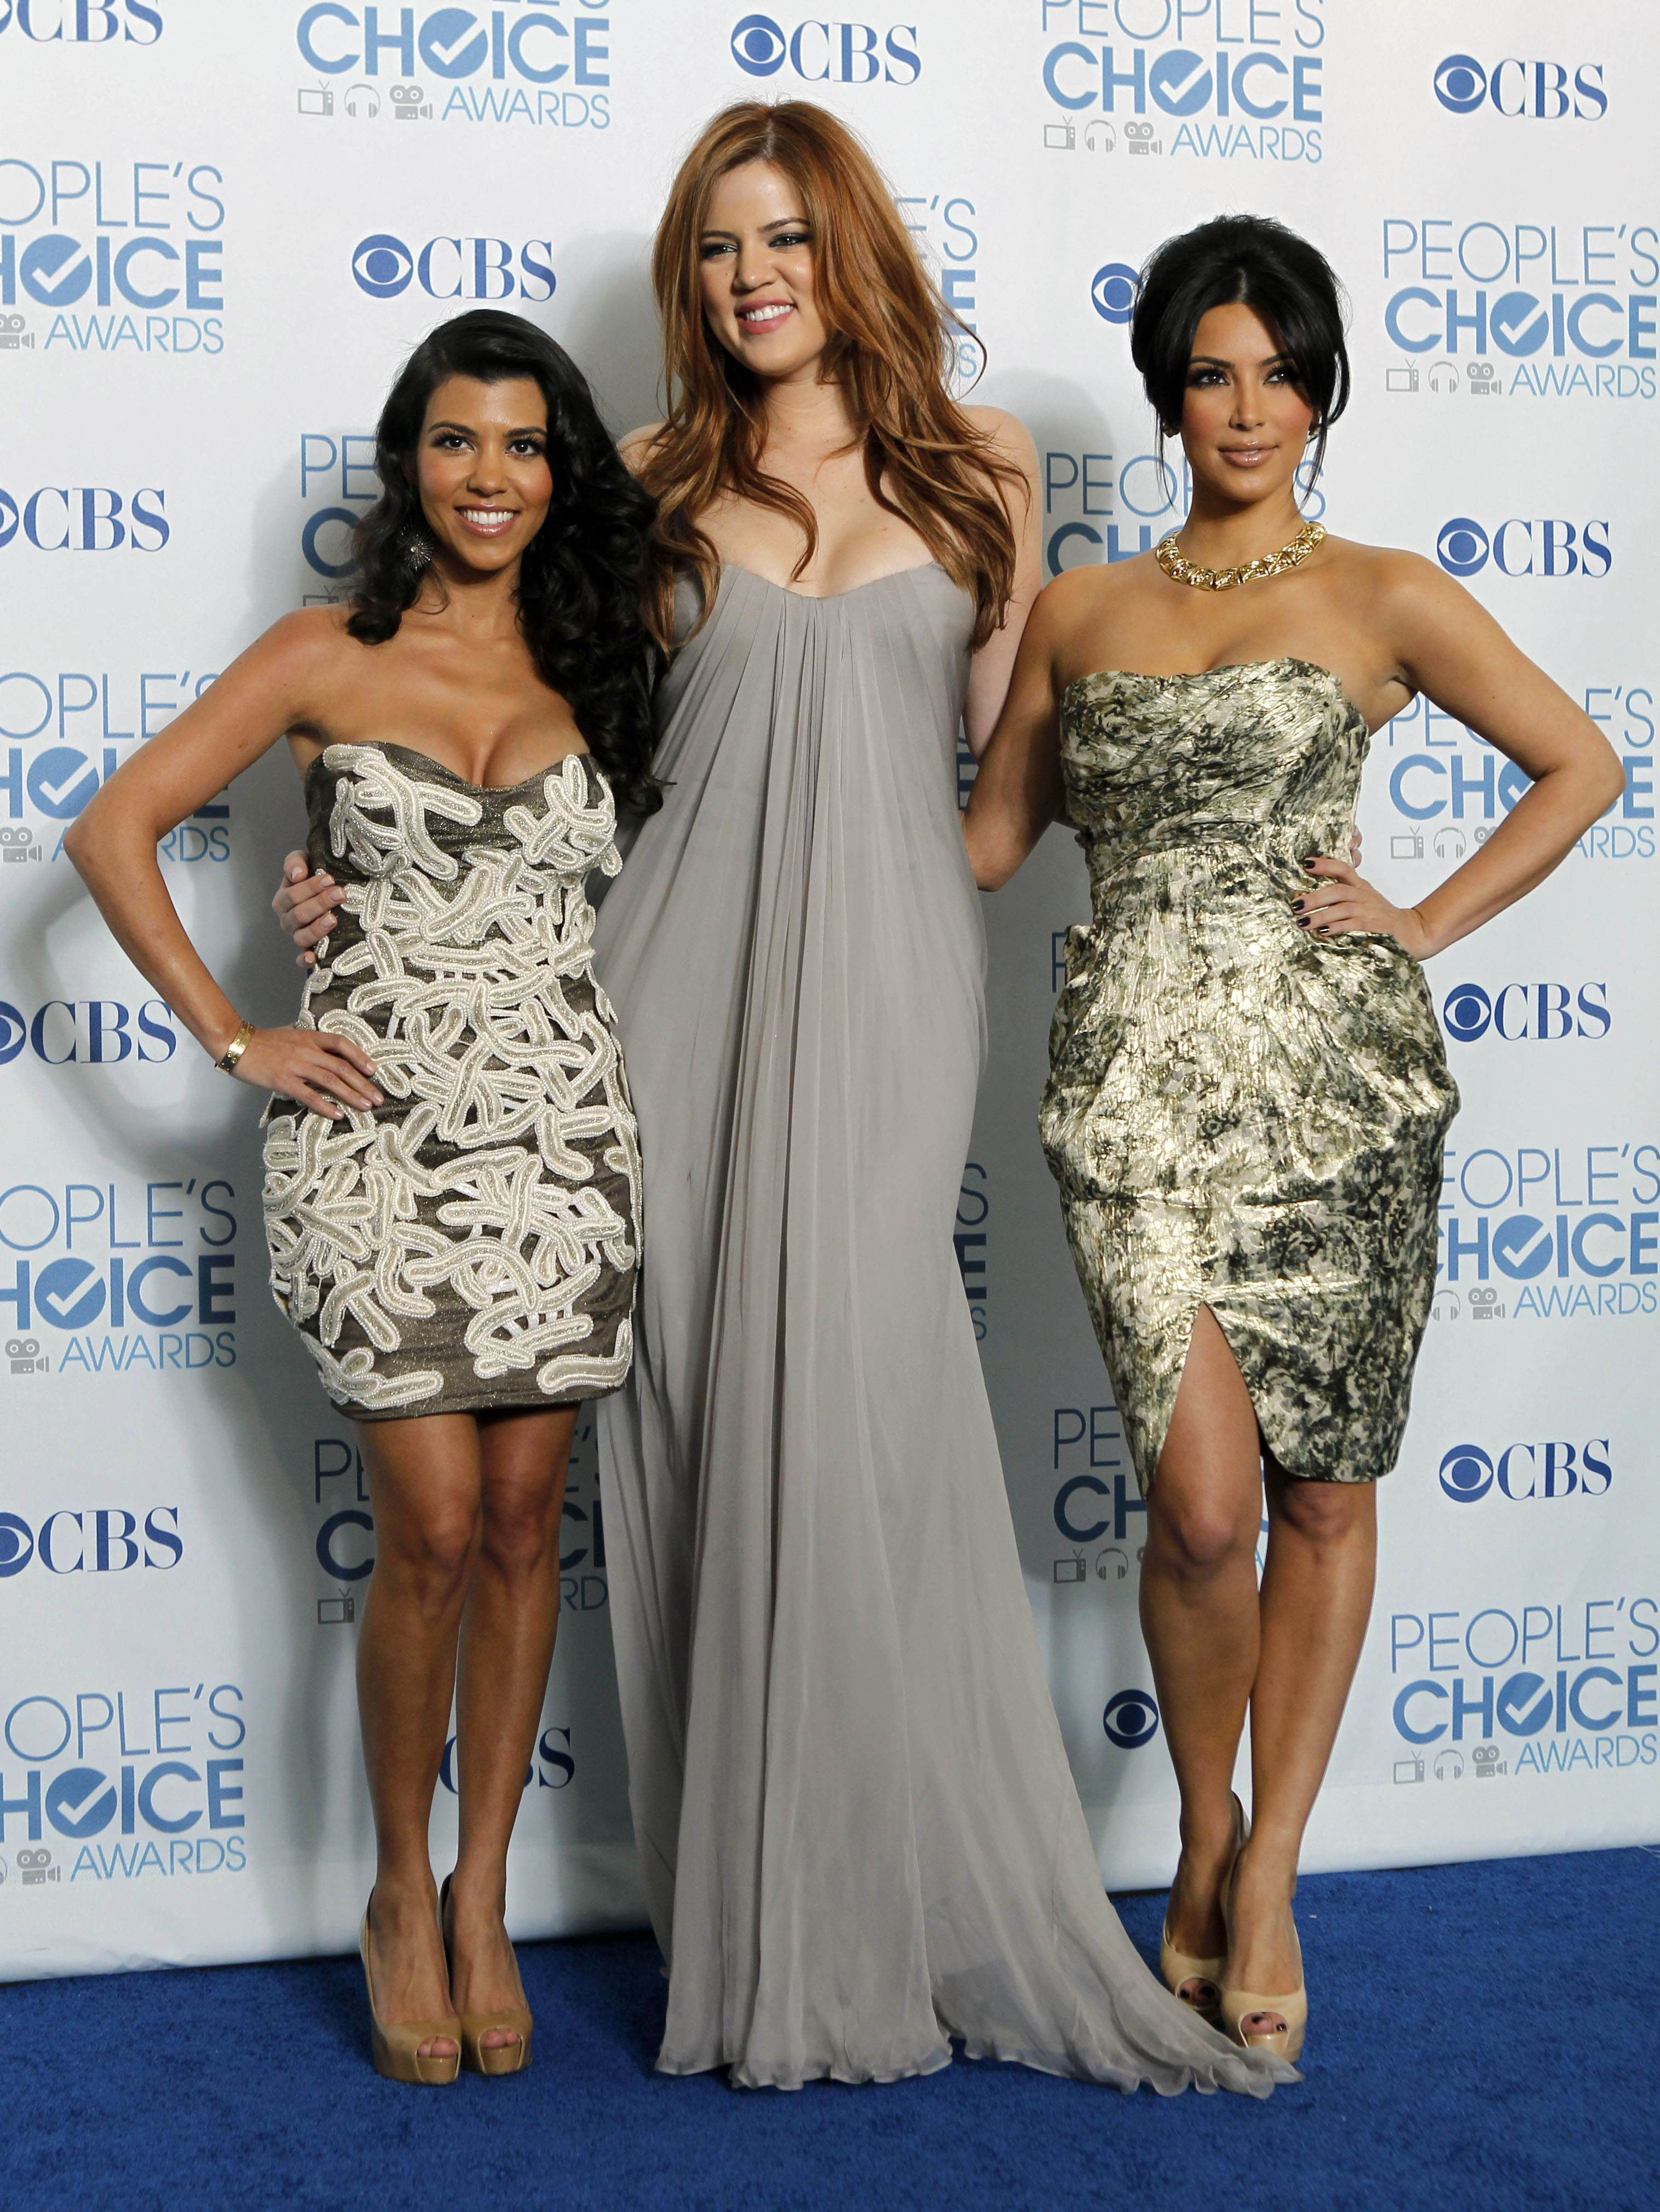 Kardashians Sued For Diet Claims